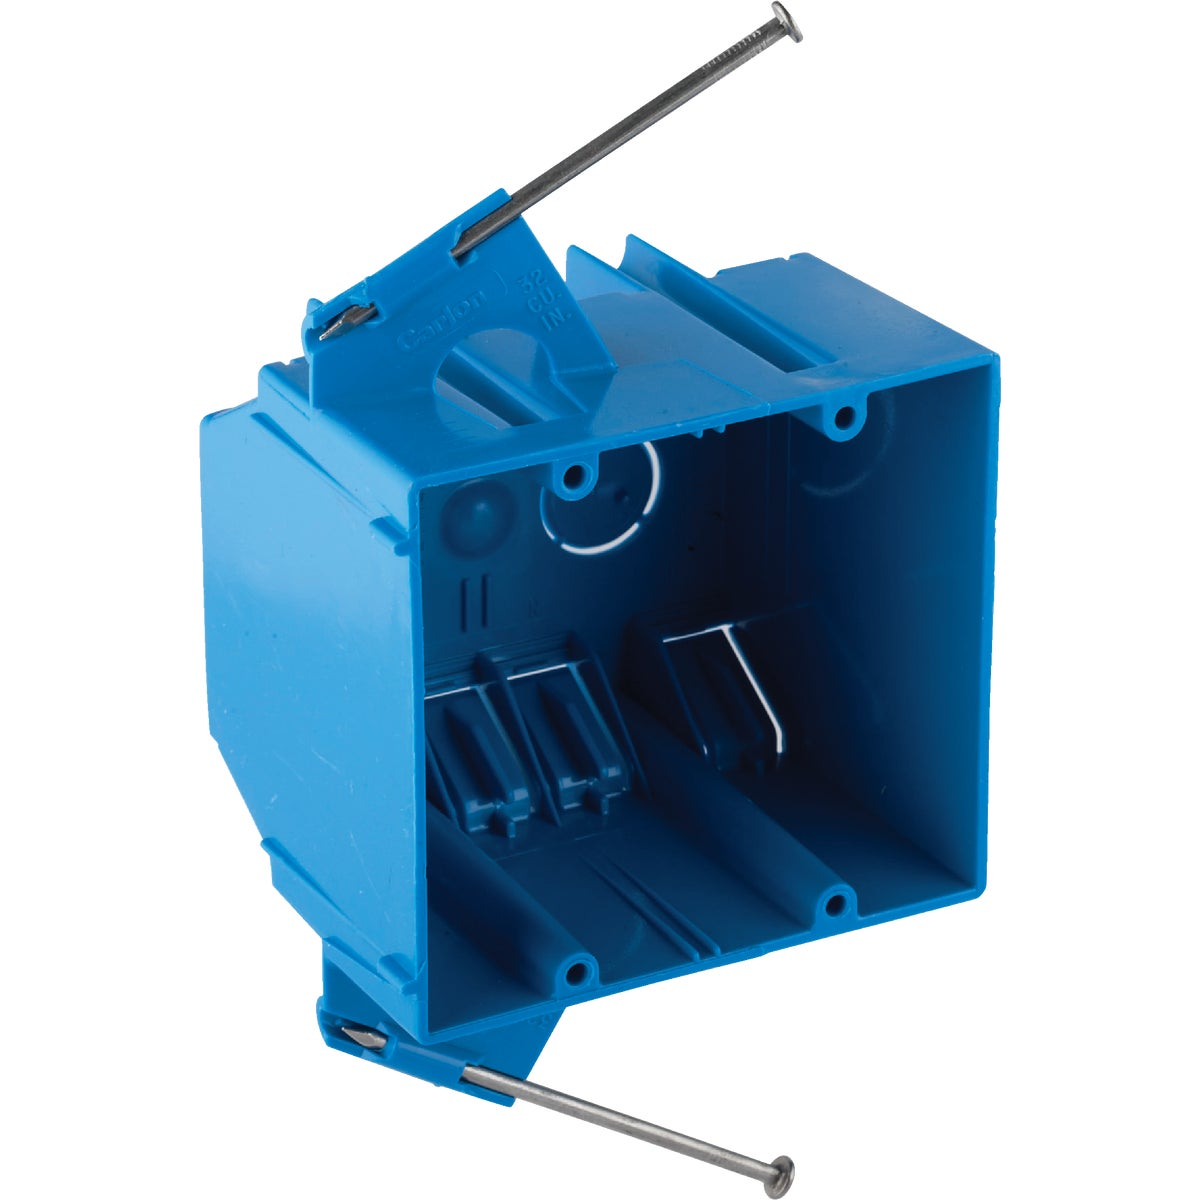 2 GANG SWITCH BOX - B232AUPC by Thomas & Betts